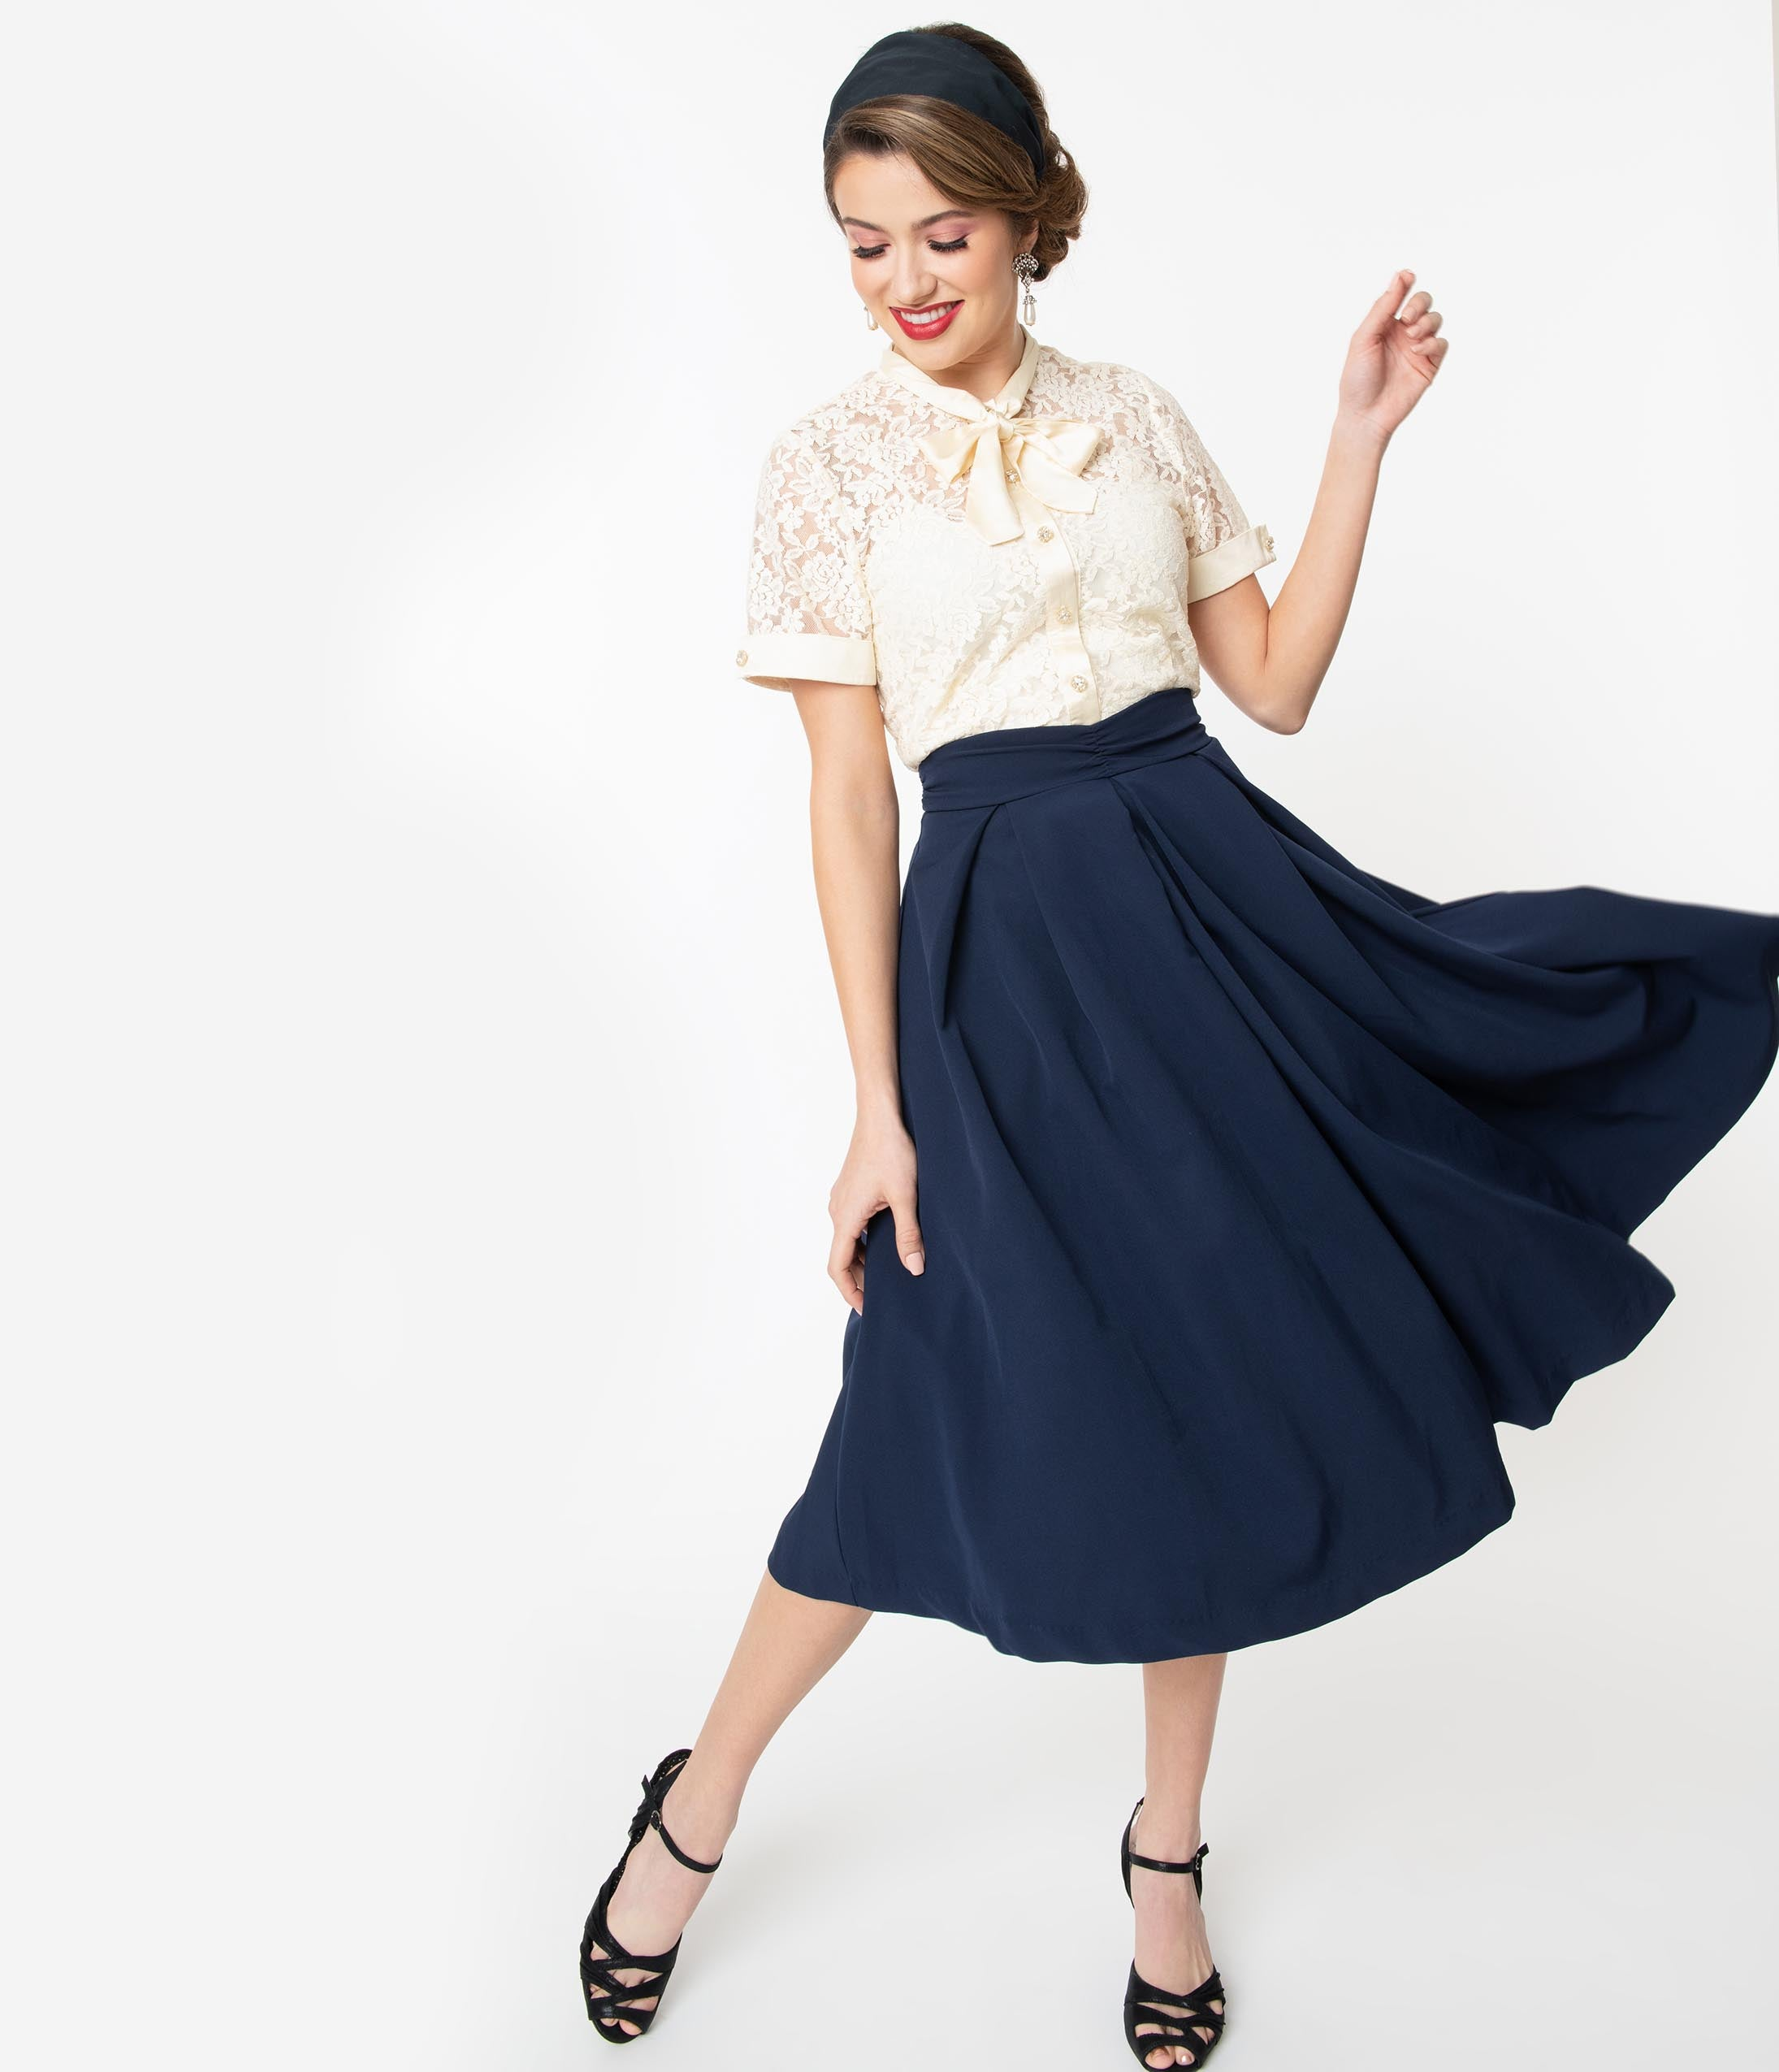 1950s Swing Skirt, Poodle Skirt, Pencil Skirts I Love Lucy X Unique Vintage Navy Blue Fashion Show Swing Skirt $78.00 AT vintagedancer.com